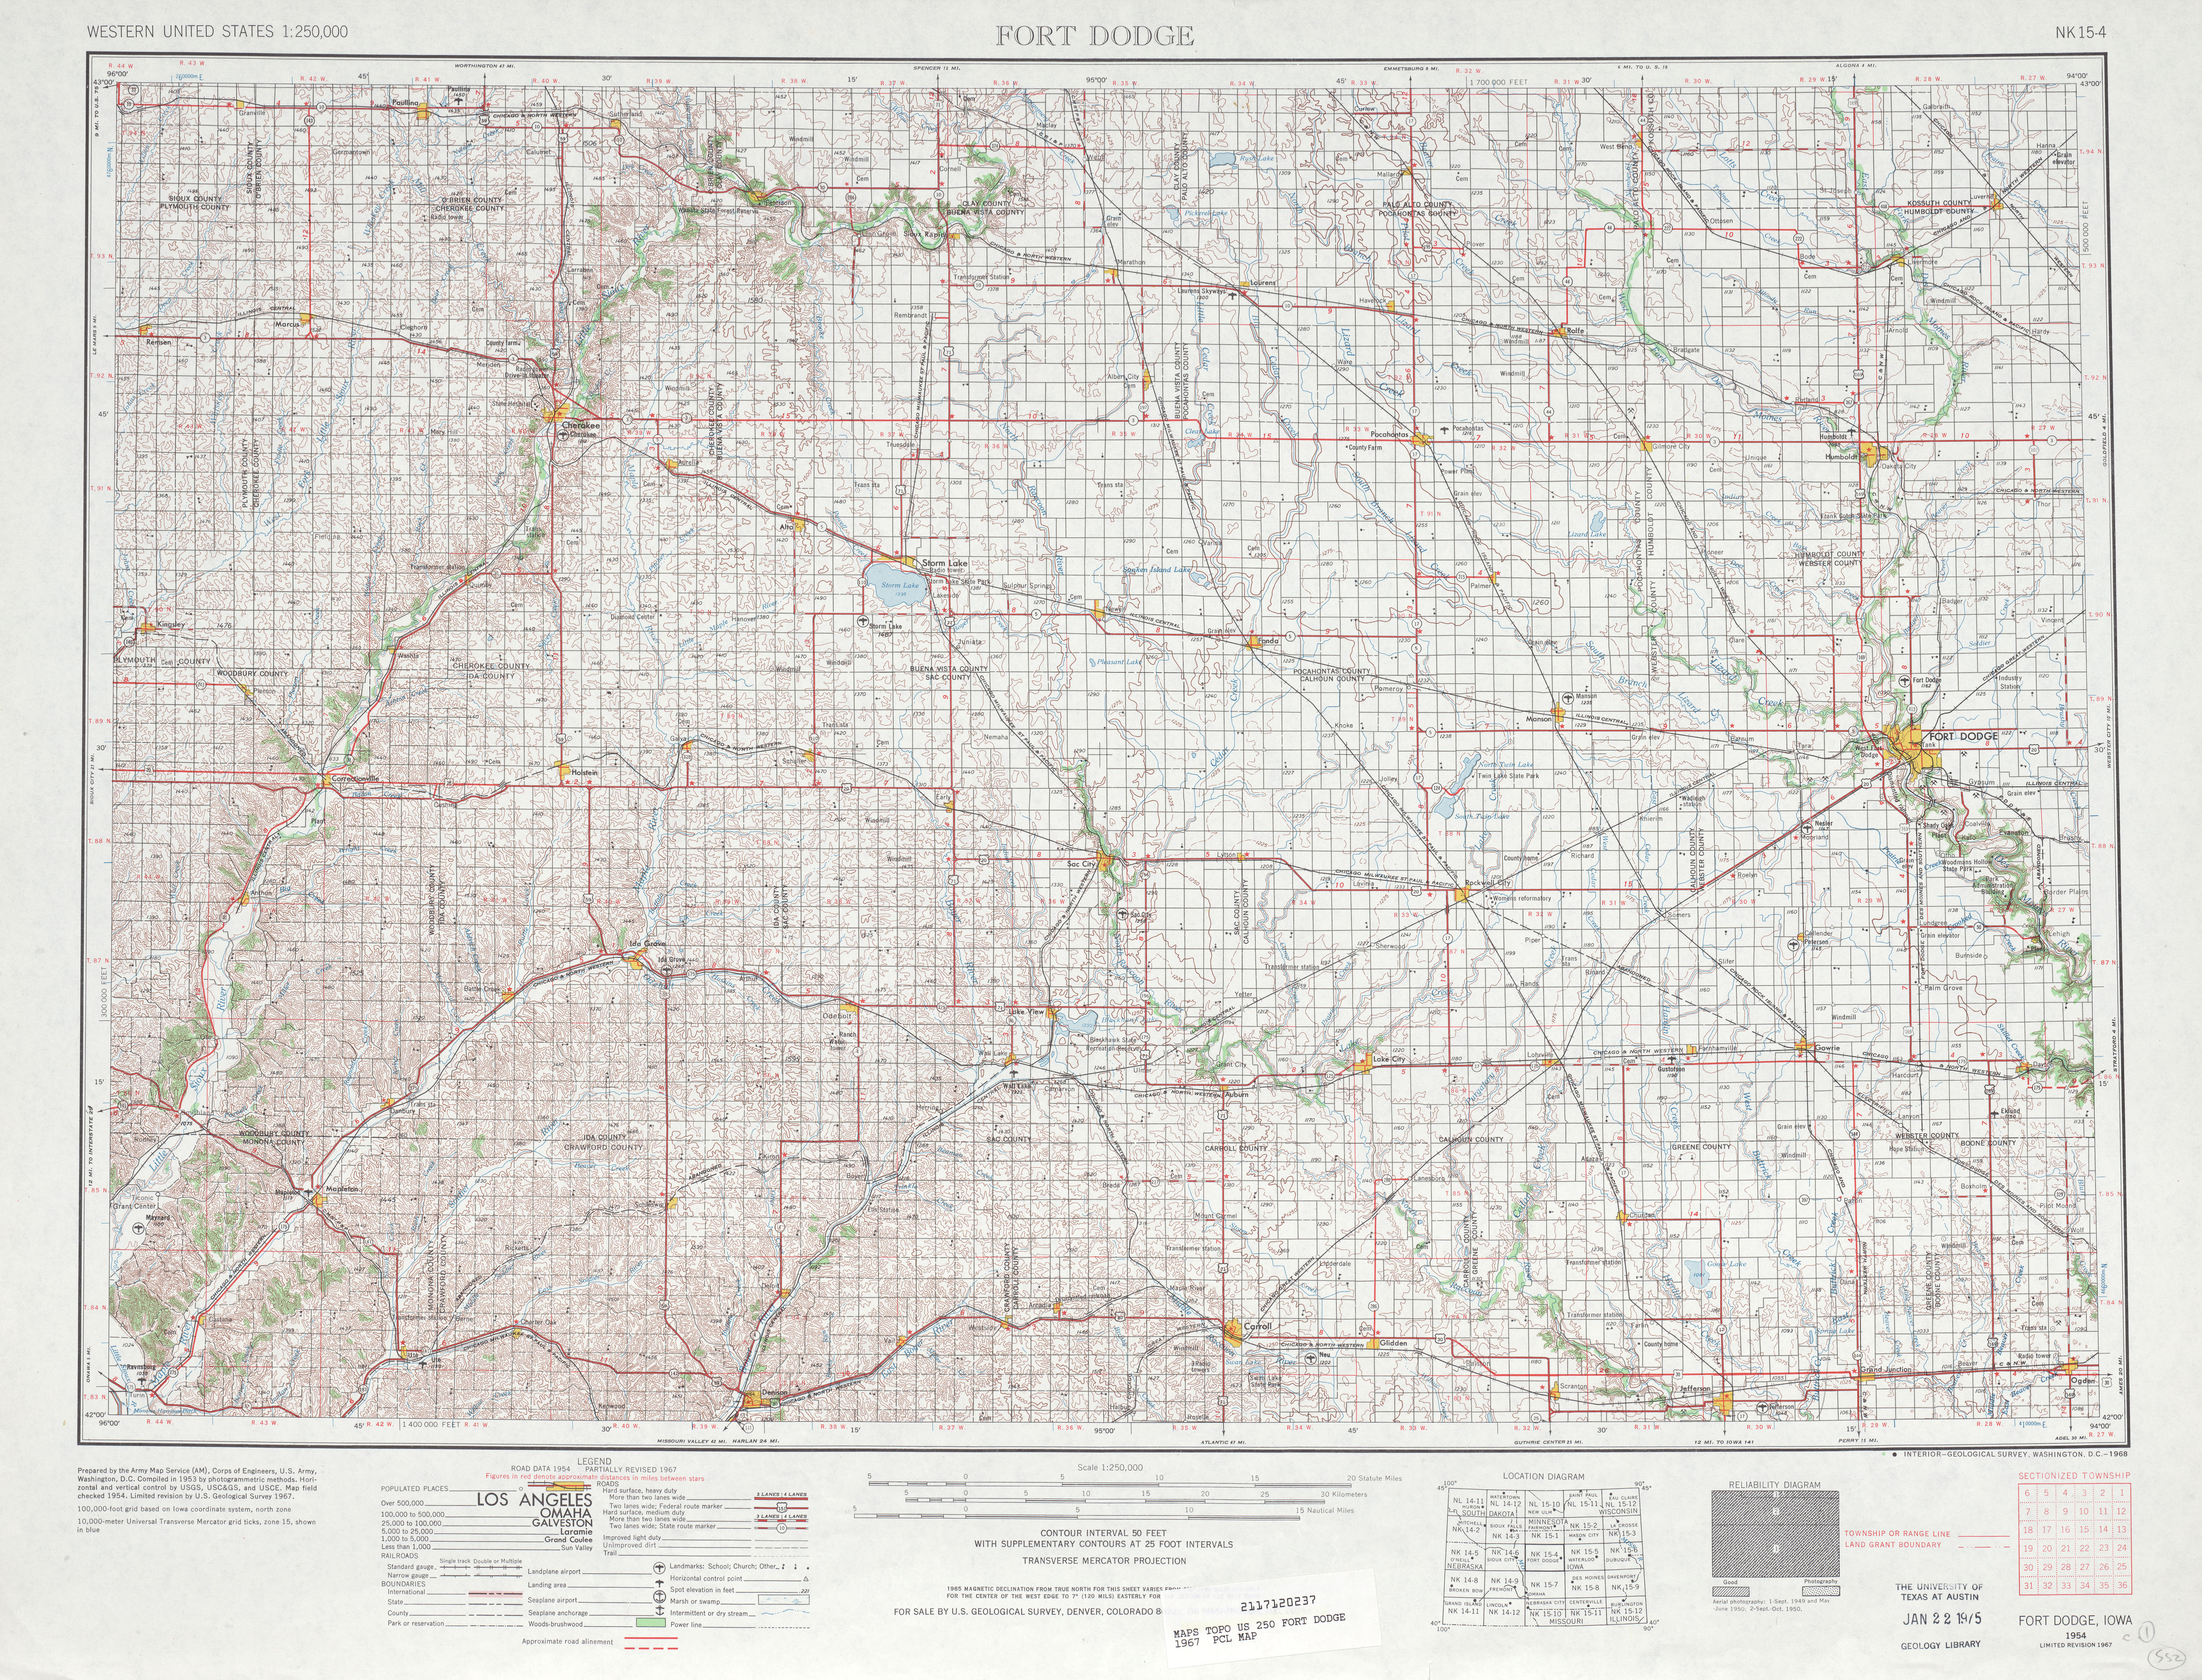 Fort Dodge Topographic Map Sheet, United States 1967